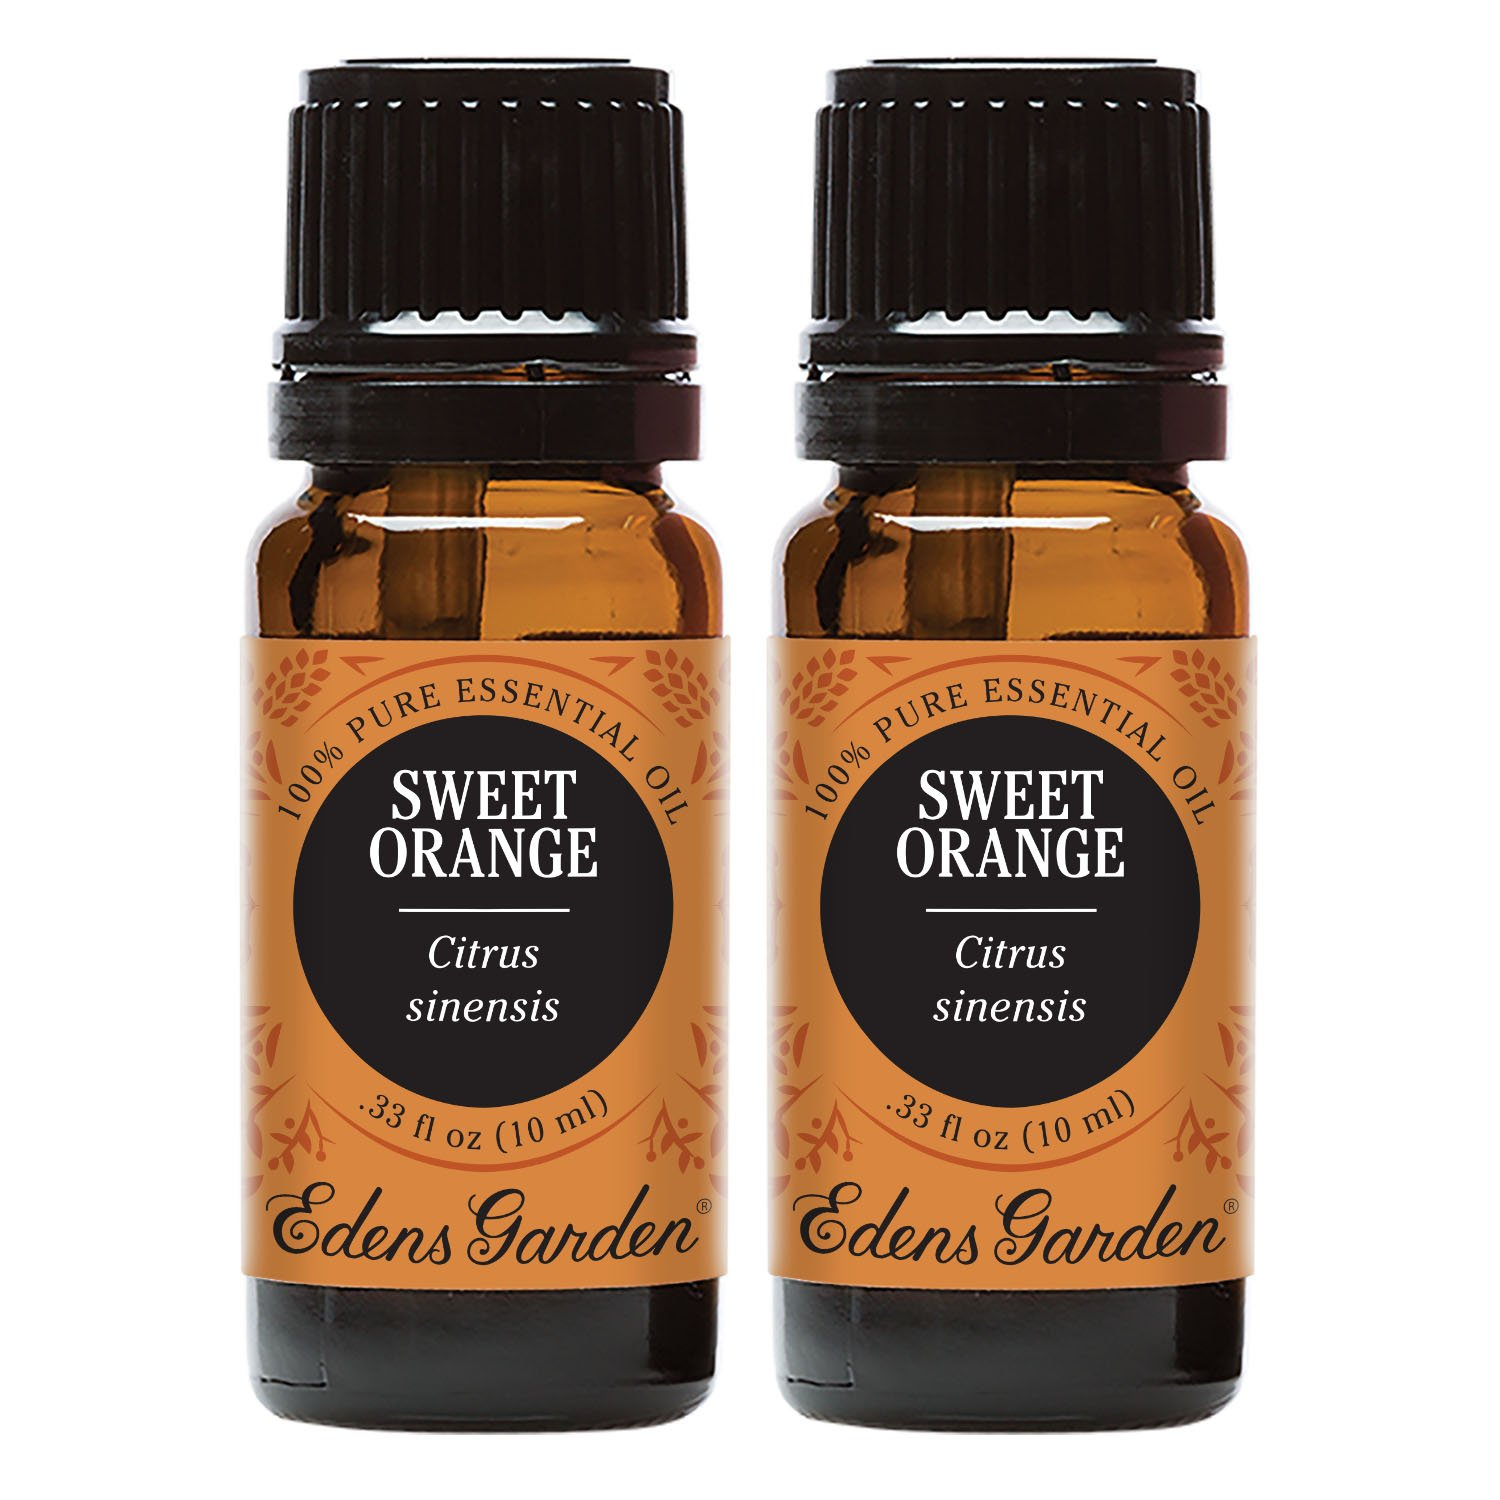 Edens Garden Sweet Orange Essential Oil, 100% Pure Therapeutic Grade (Aromatherapy Oils- Digestion & Inflammation), 10 ml Value Pack